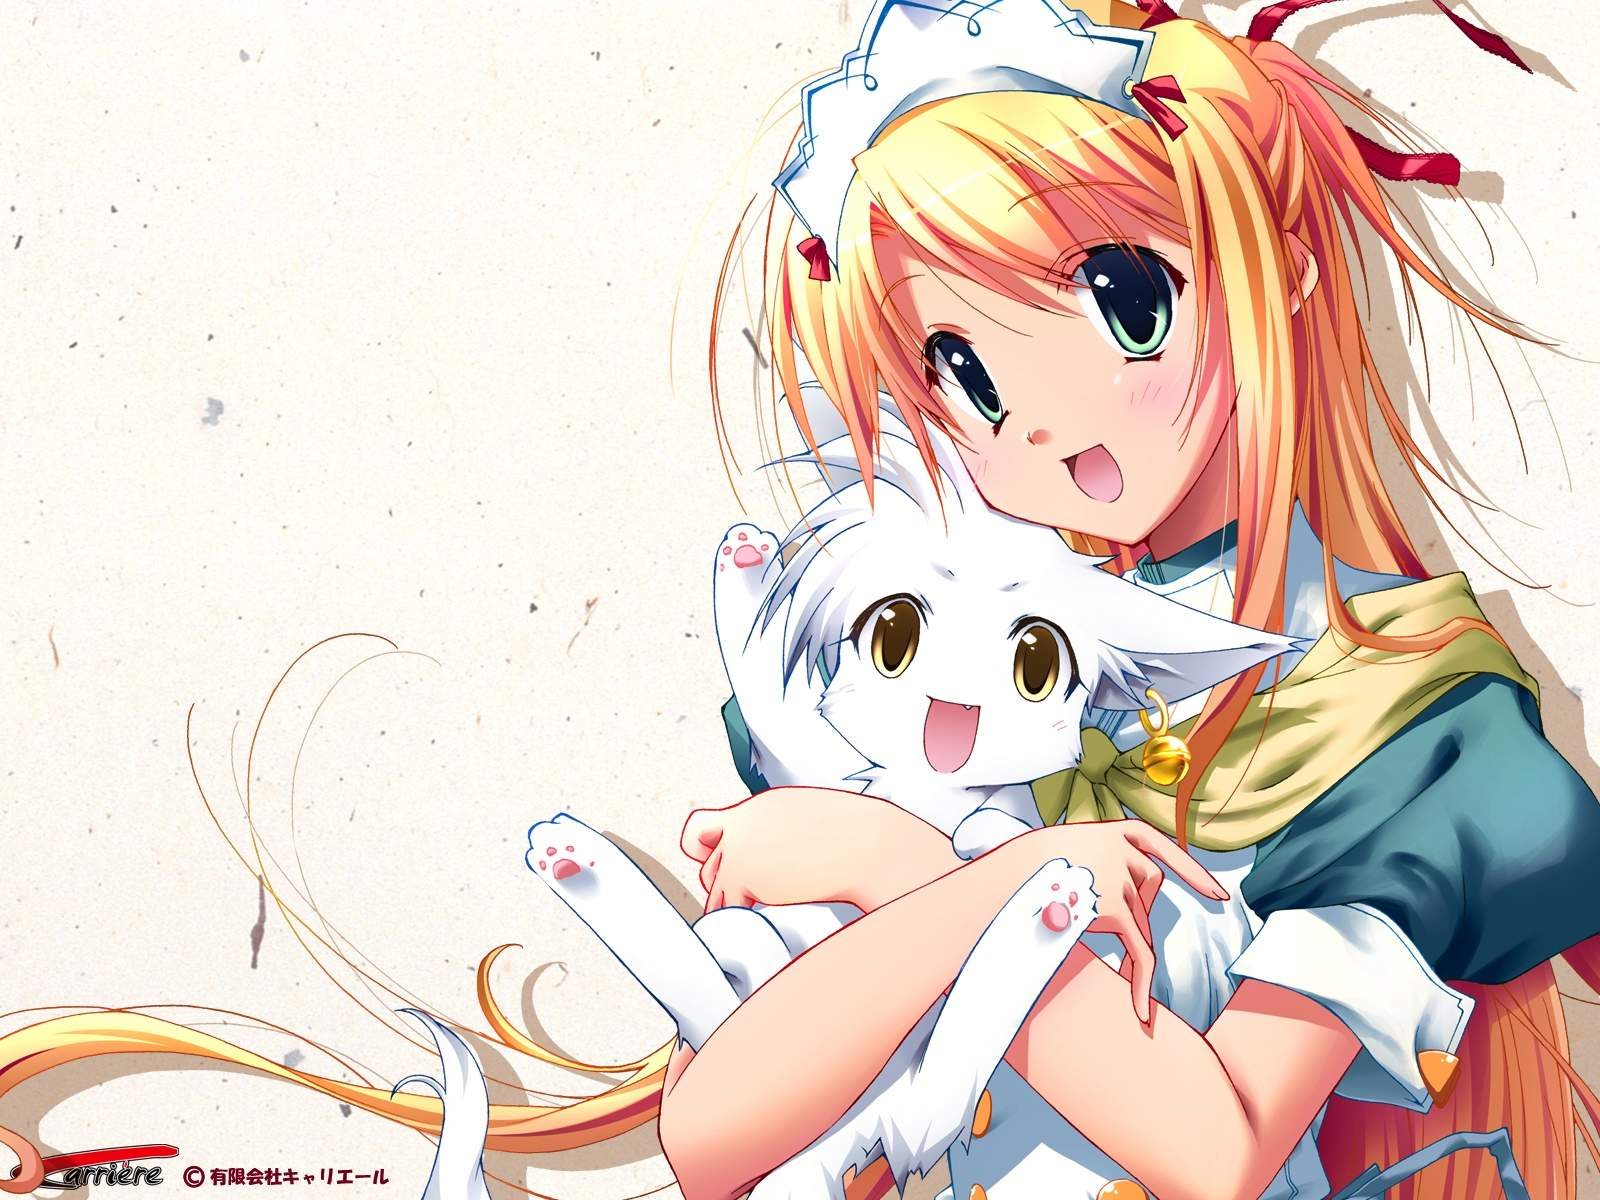 hickey photography Cute Anime Wallpapers 1600x1200